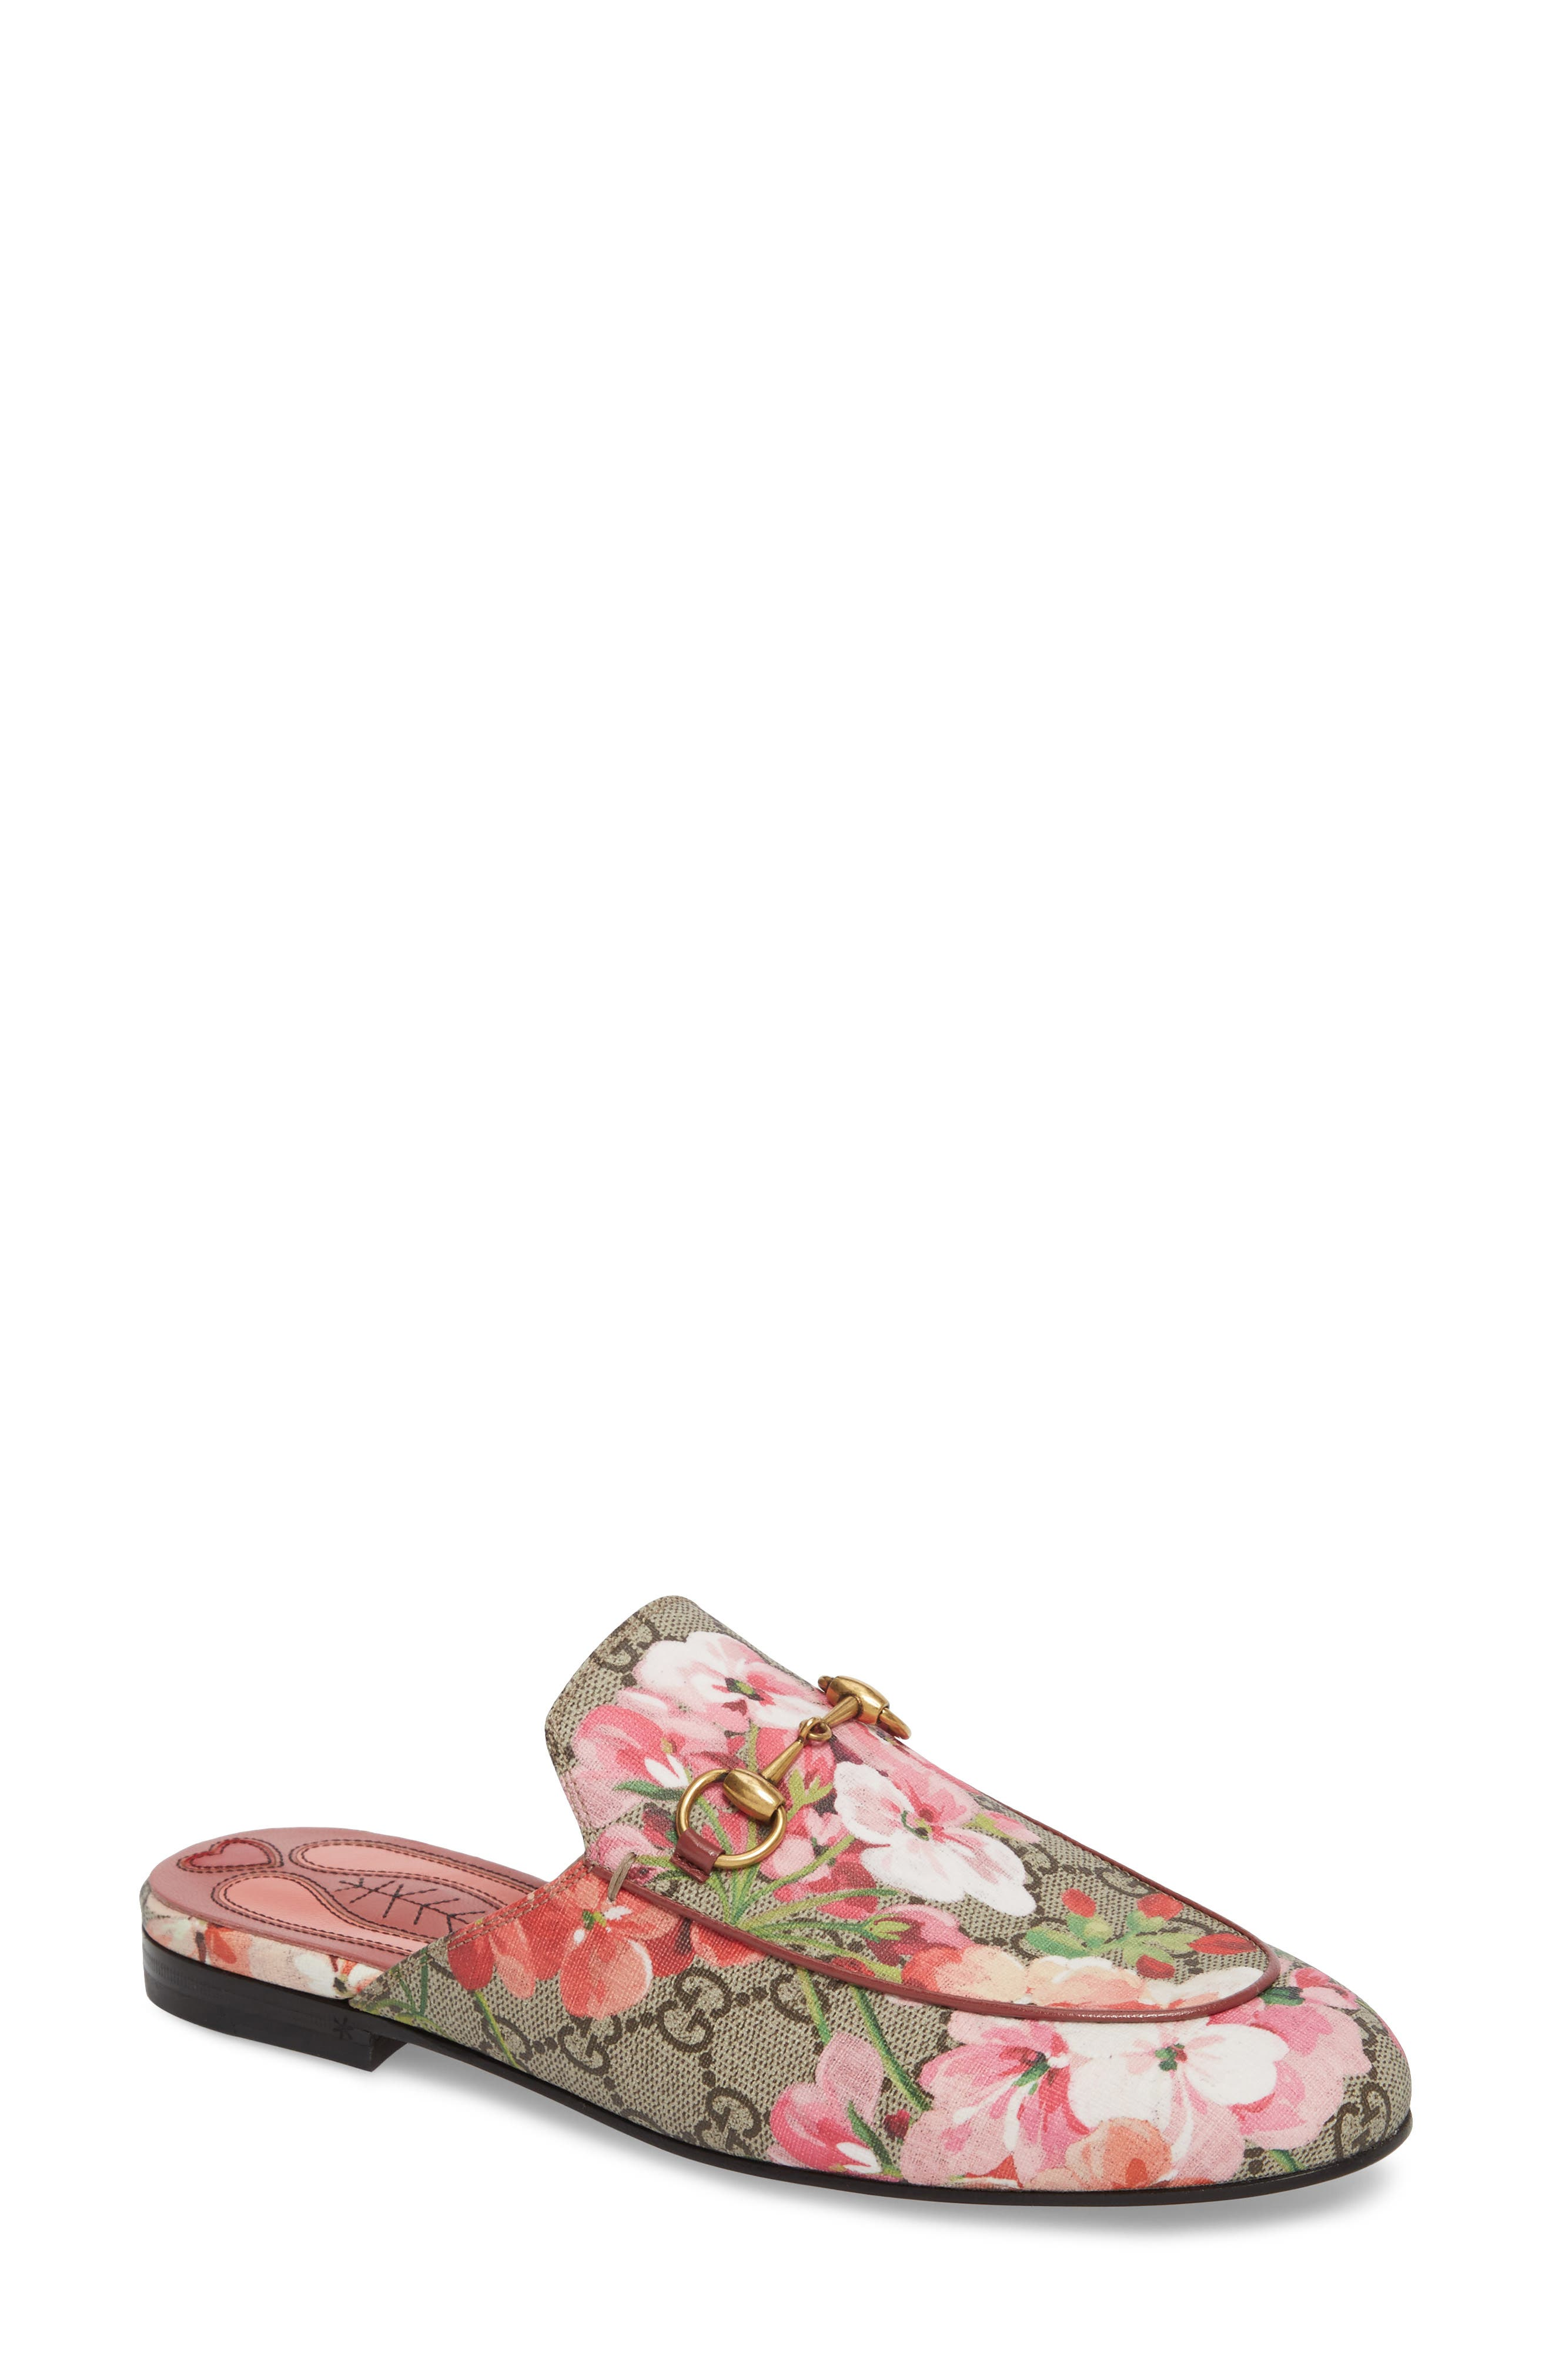 Princetown Loafer Mule,                         Main,                         color, BEIGE/ FLORAL PRINT